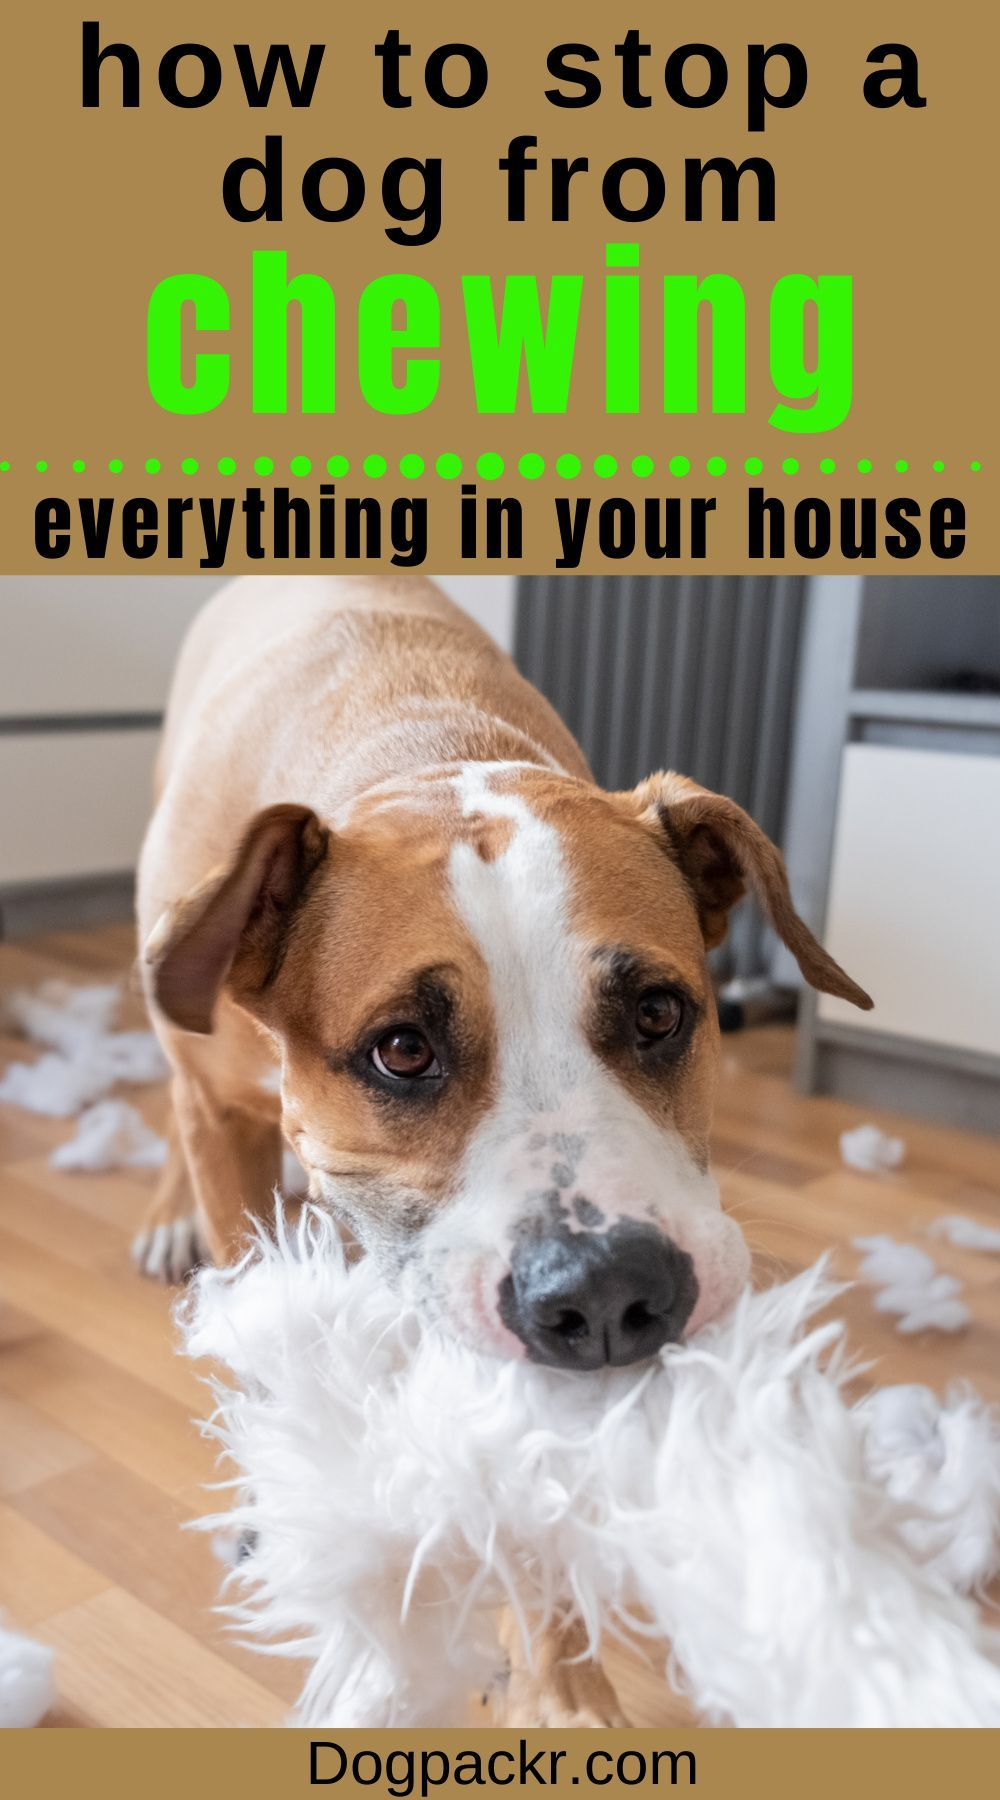 How to stop a dog from chewing on things dogpackr dogs